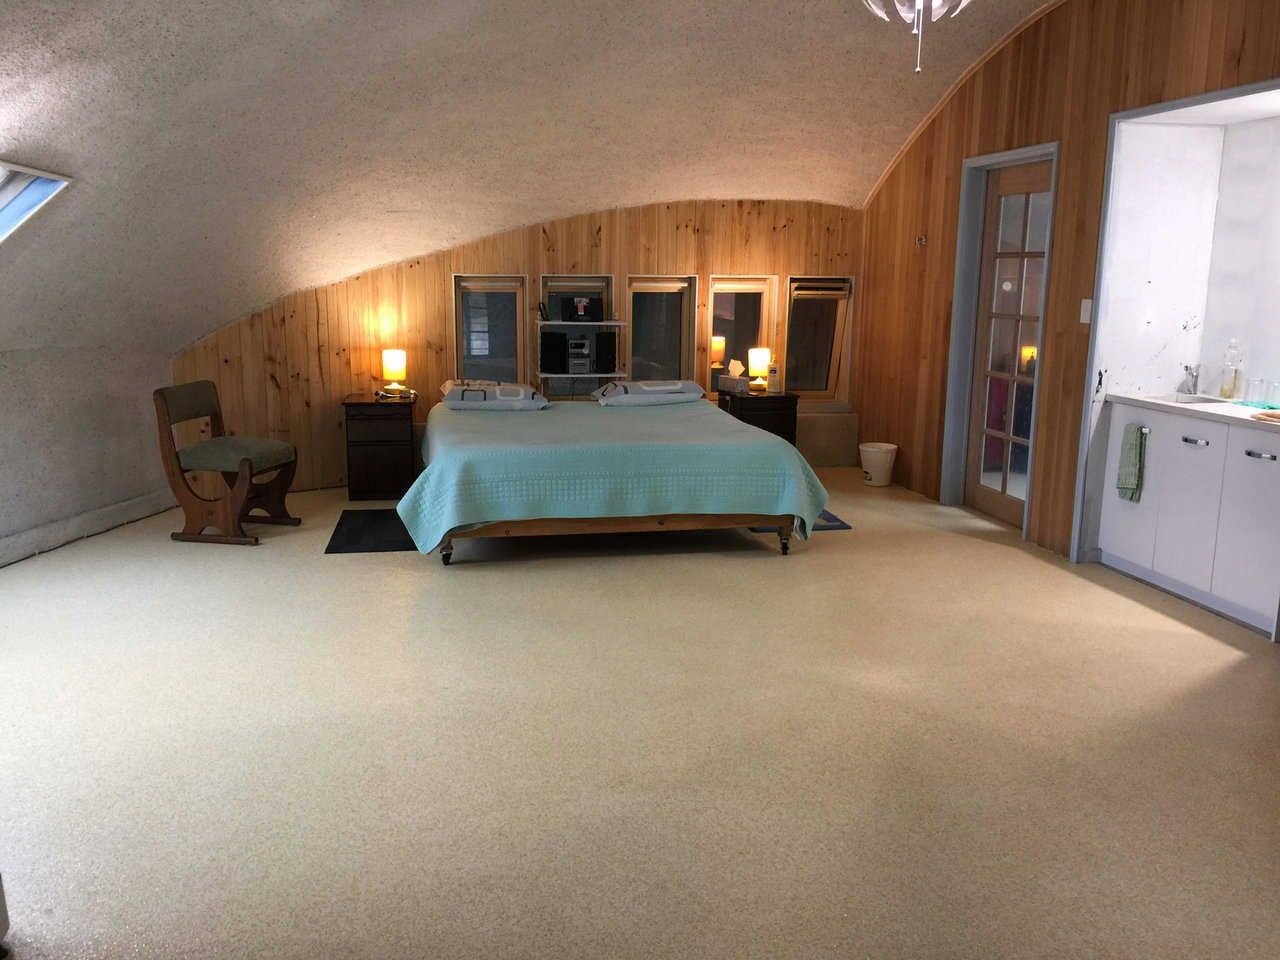 Interior design dome home - Master Bedroom In The New 3 Level Monolithic Dome Home That Has Been Completed In